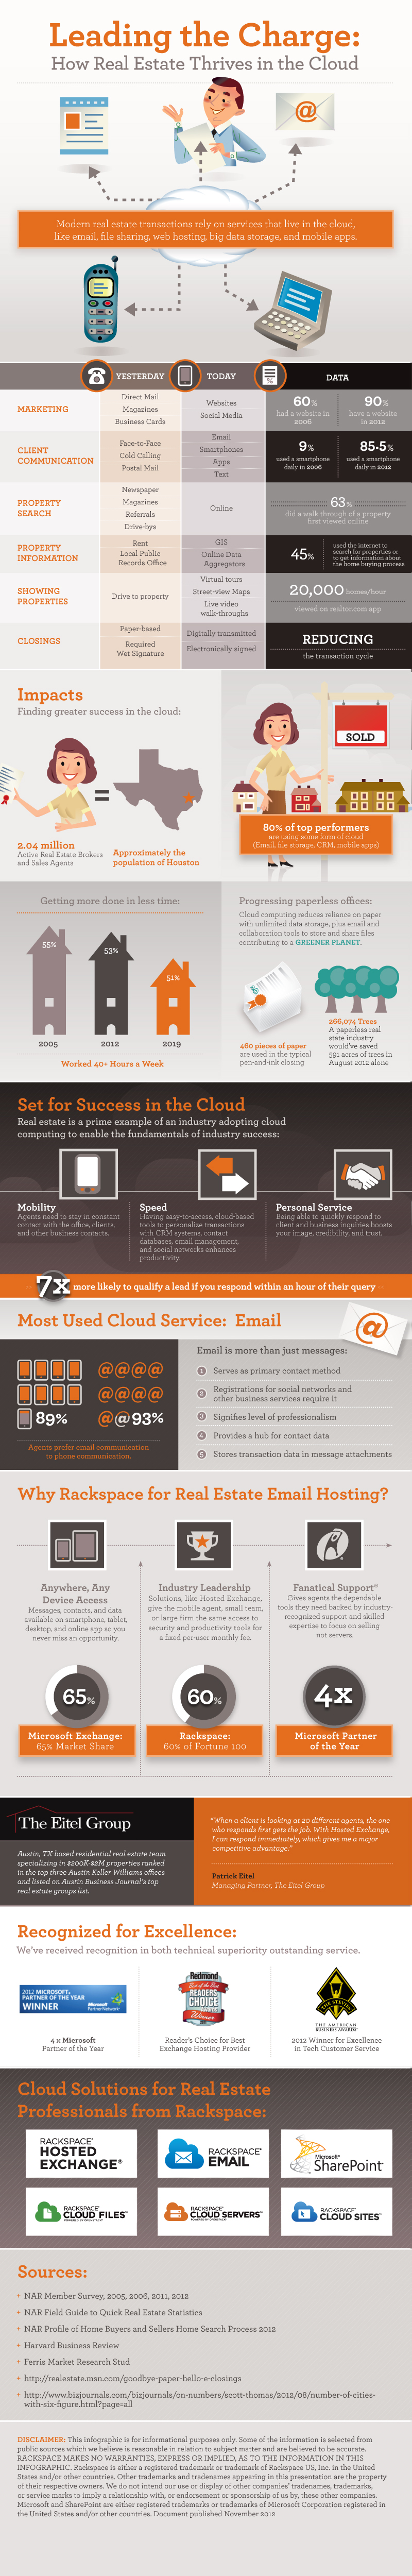 Cloud Technology for Real Estate Industry